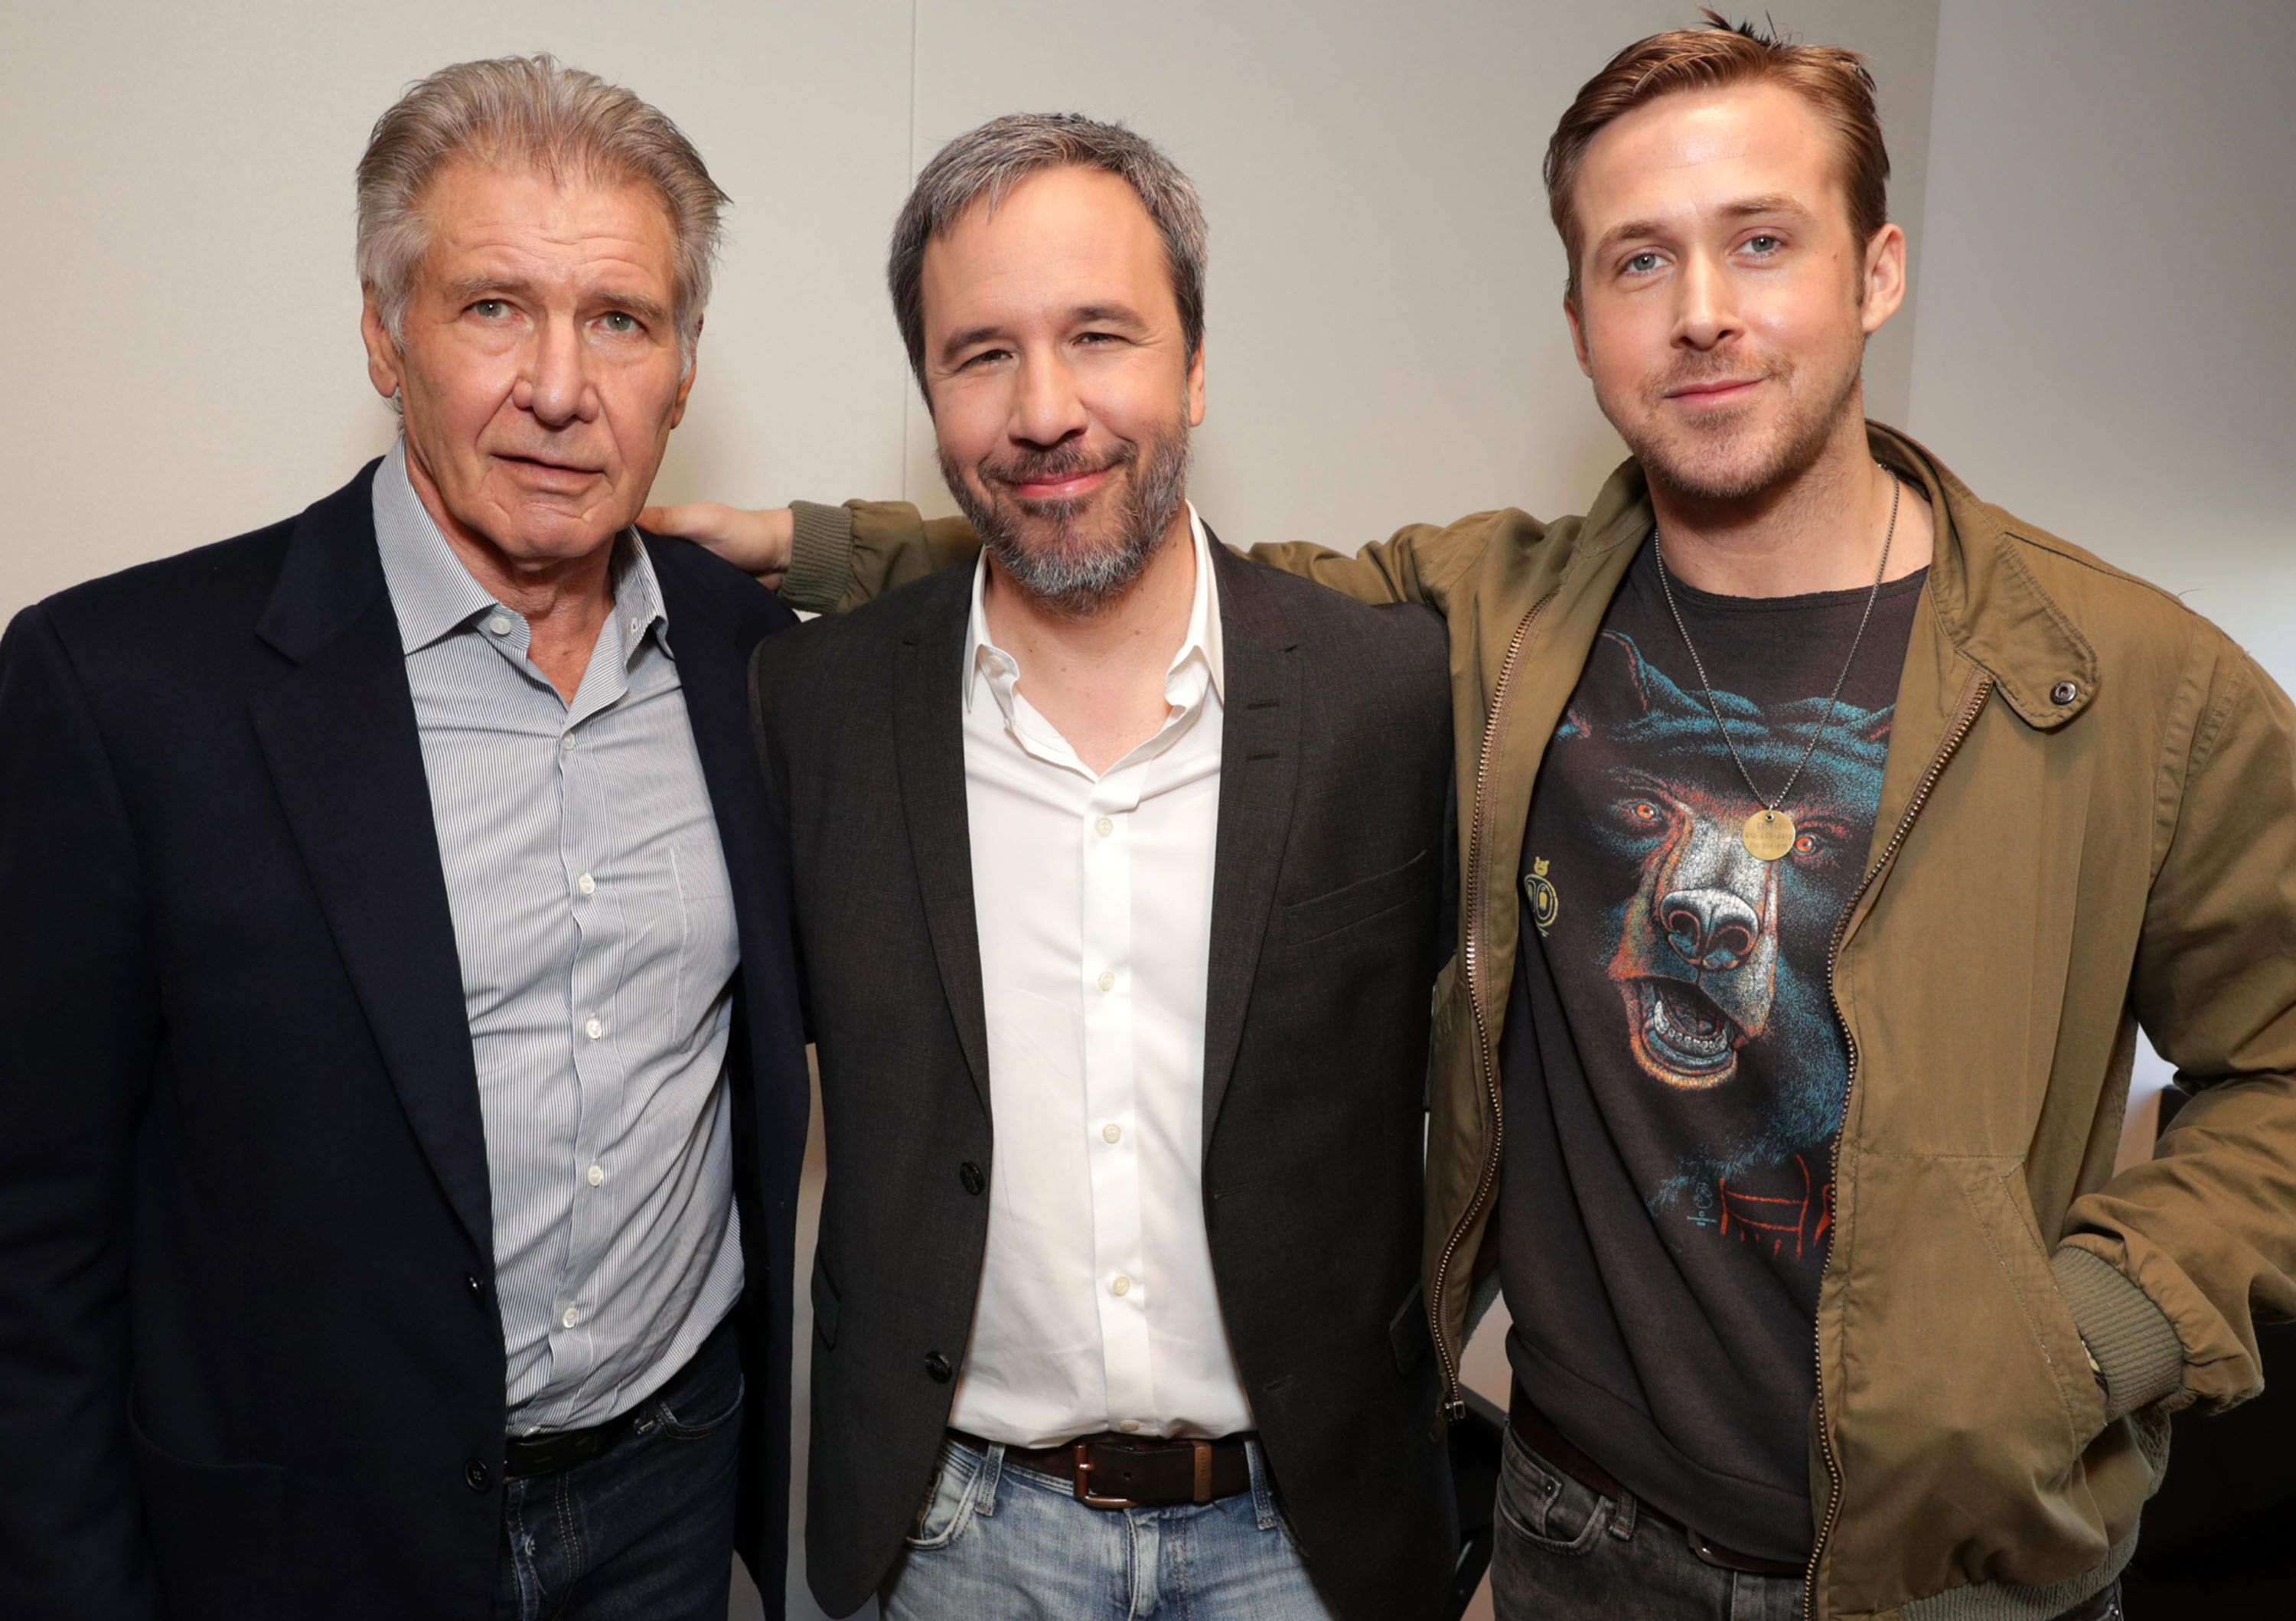 'Blade Runner 2049' Director Denis Villeneuve Addresses 'Bond 25' Rumors